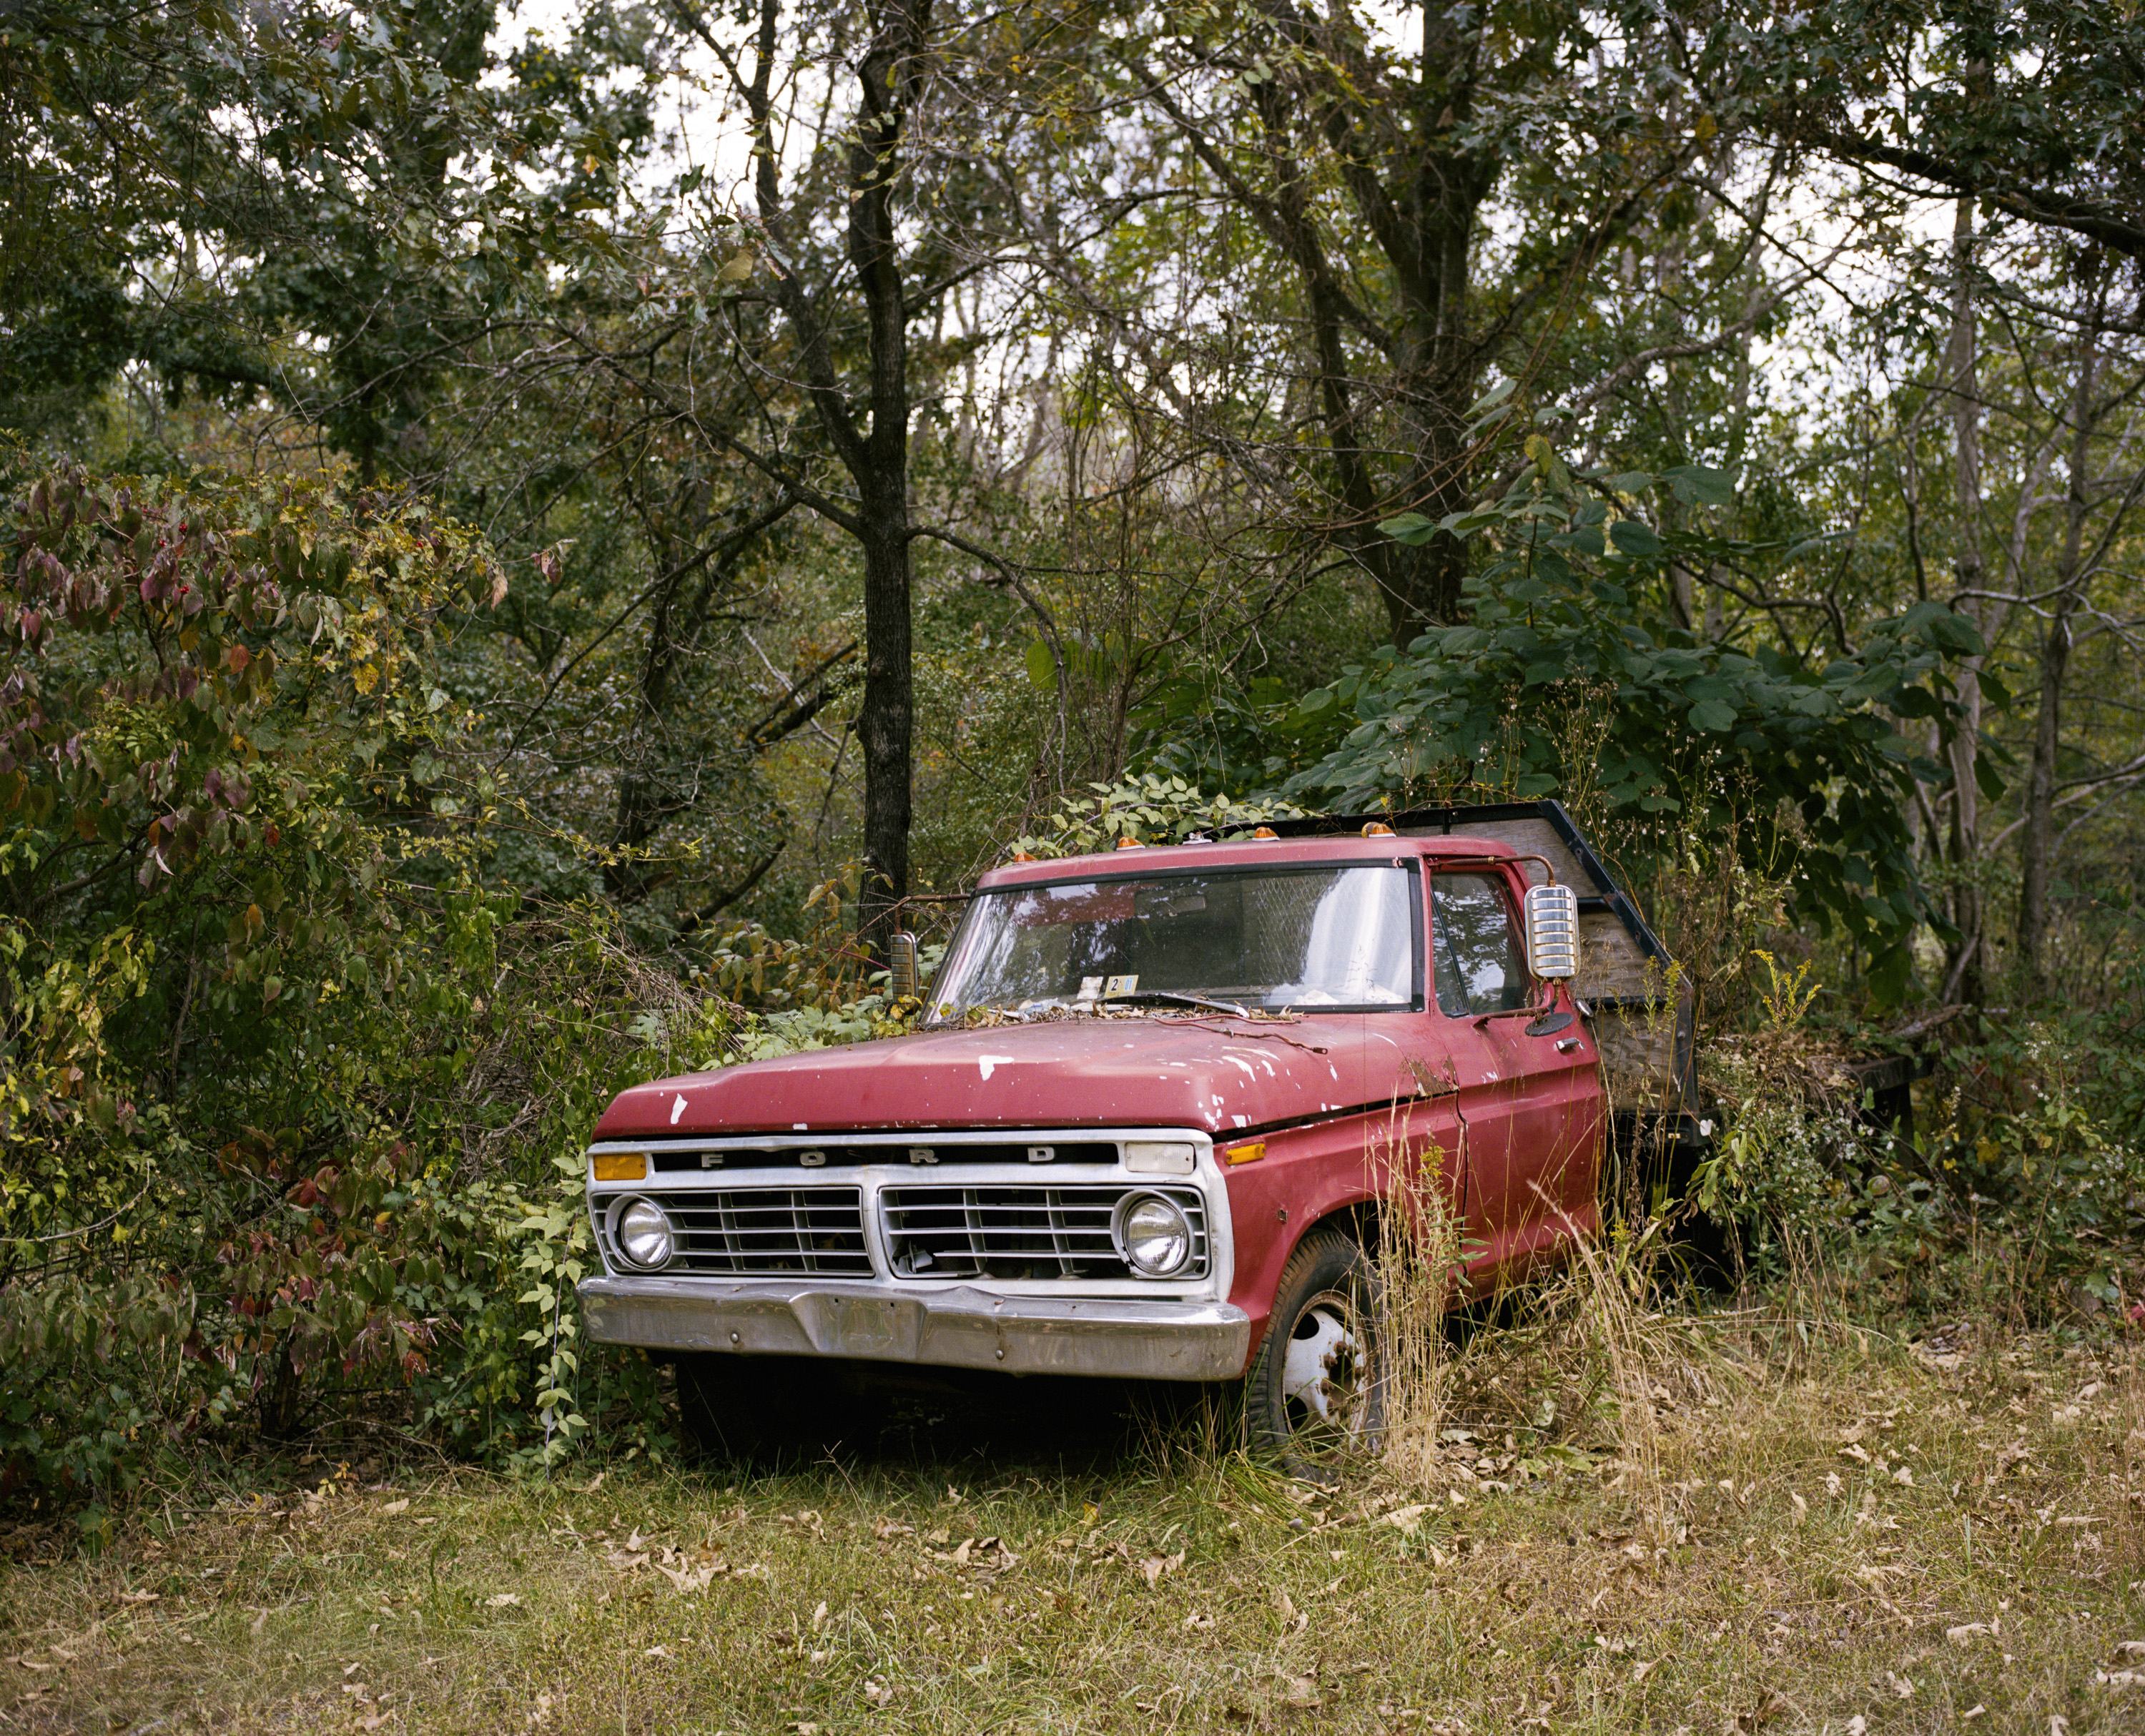 Old Ford, somwhere in West Virginia